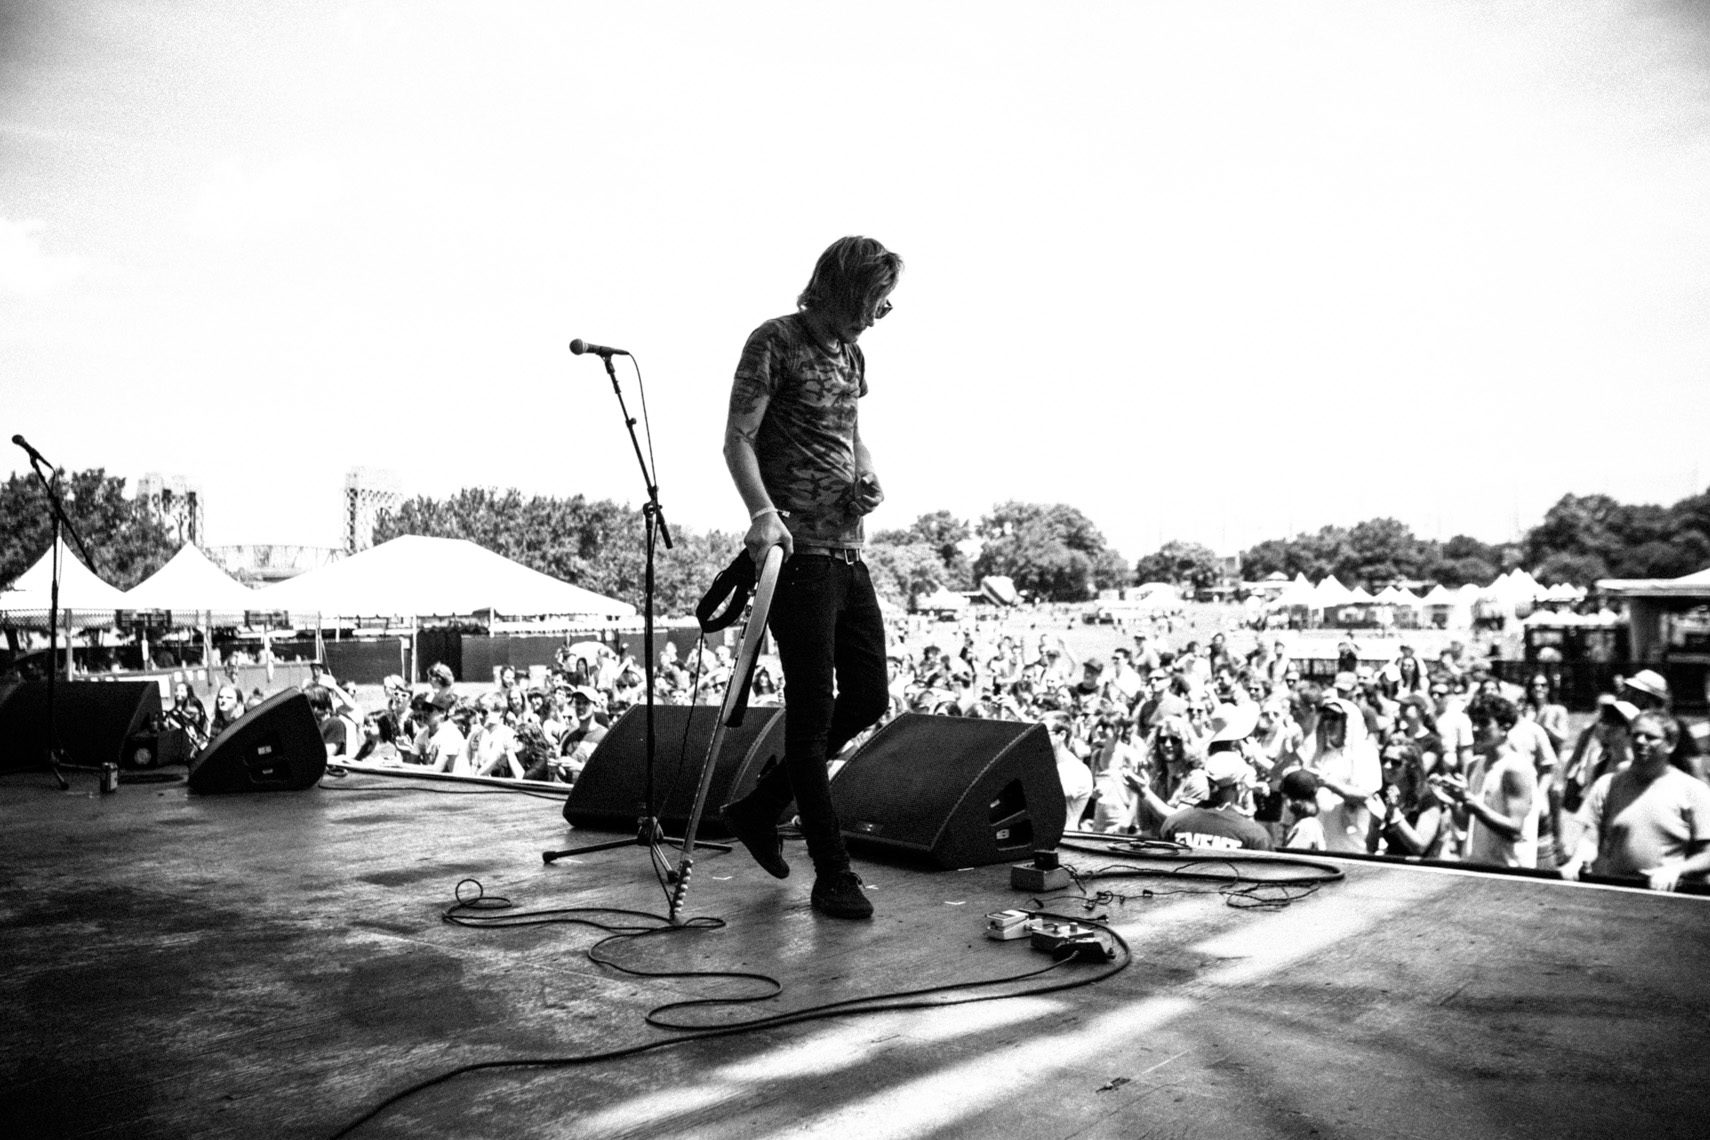 Turf Wars photographed by Forest Woodward at Governors Ball music festival